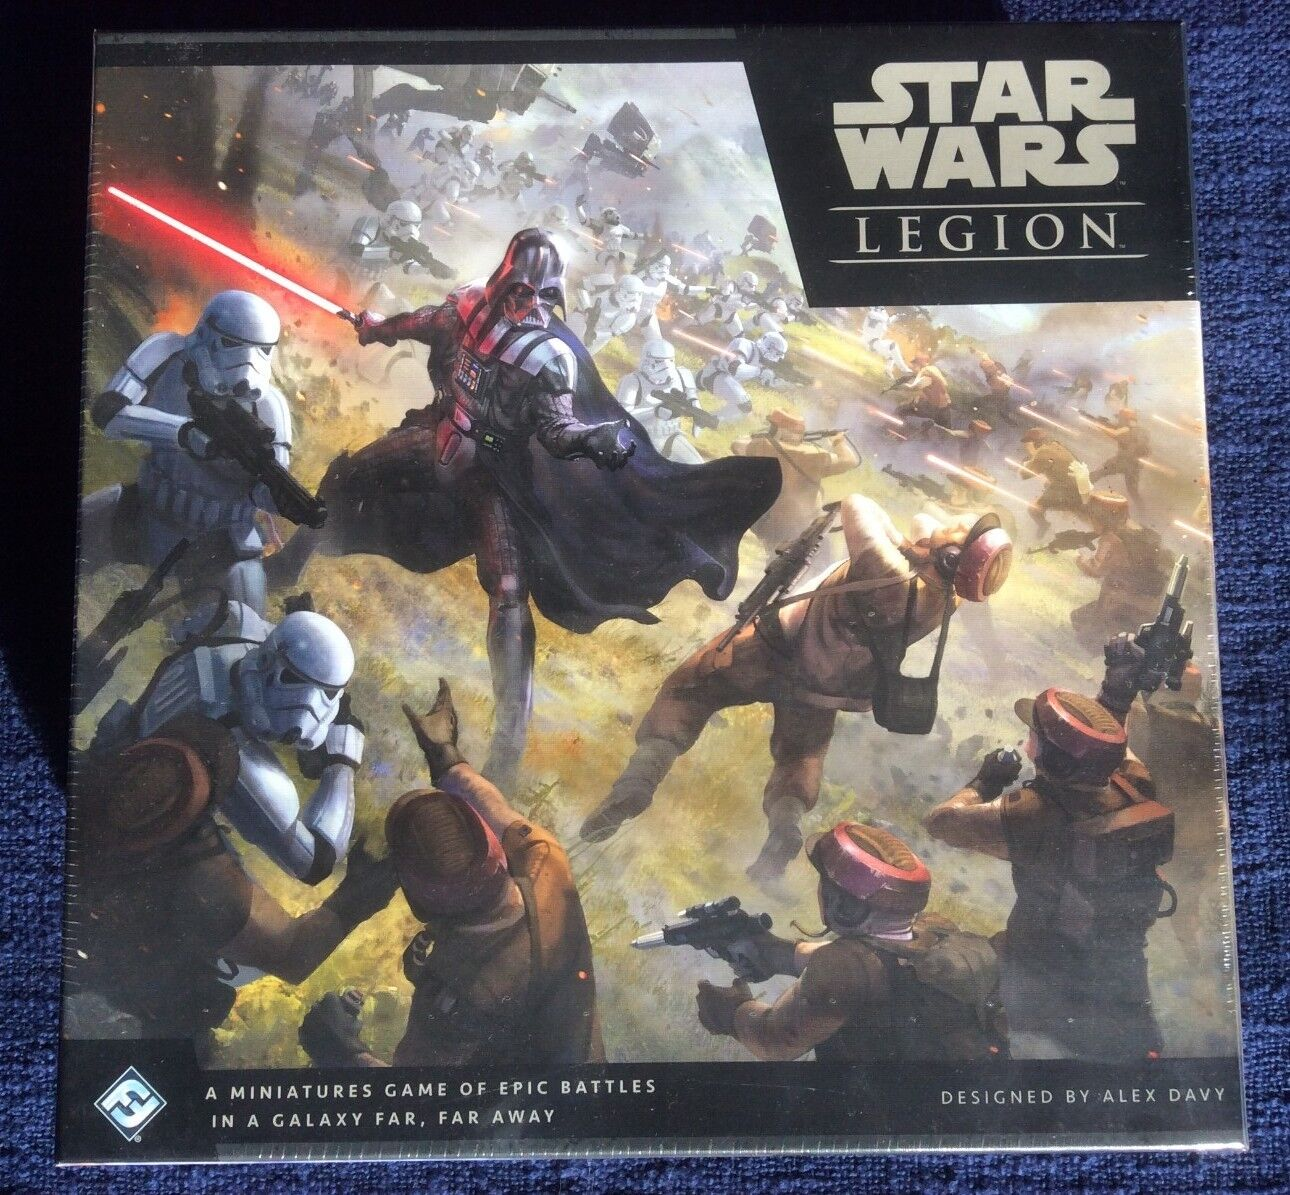 Estrella Wars Corps Corps Corps Core Juego Point Factory Selling the Mirage Juego Liberty 875